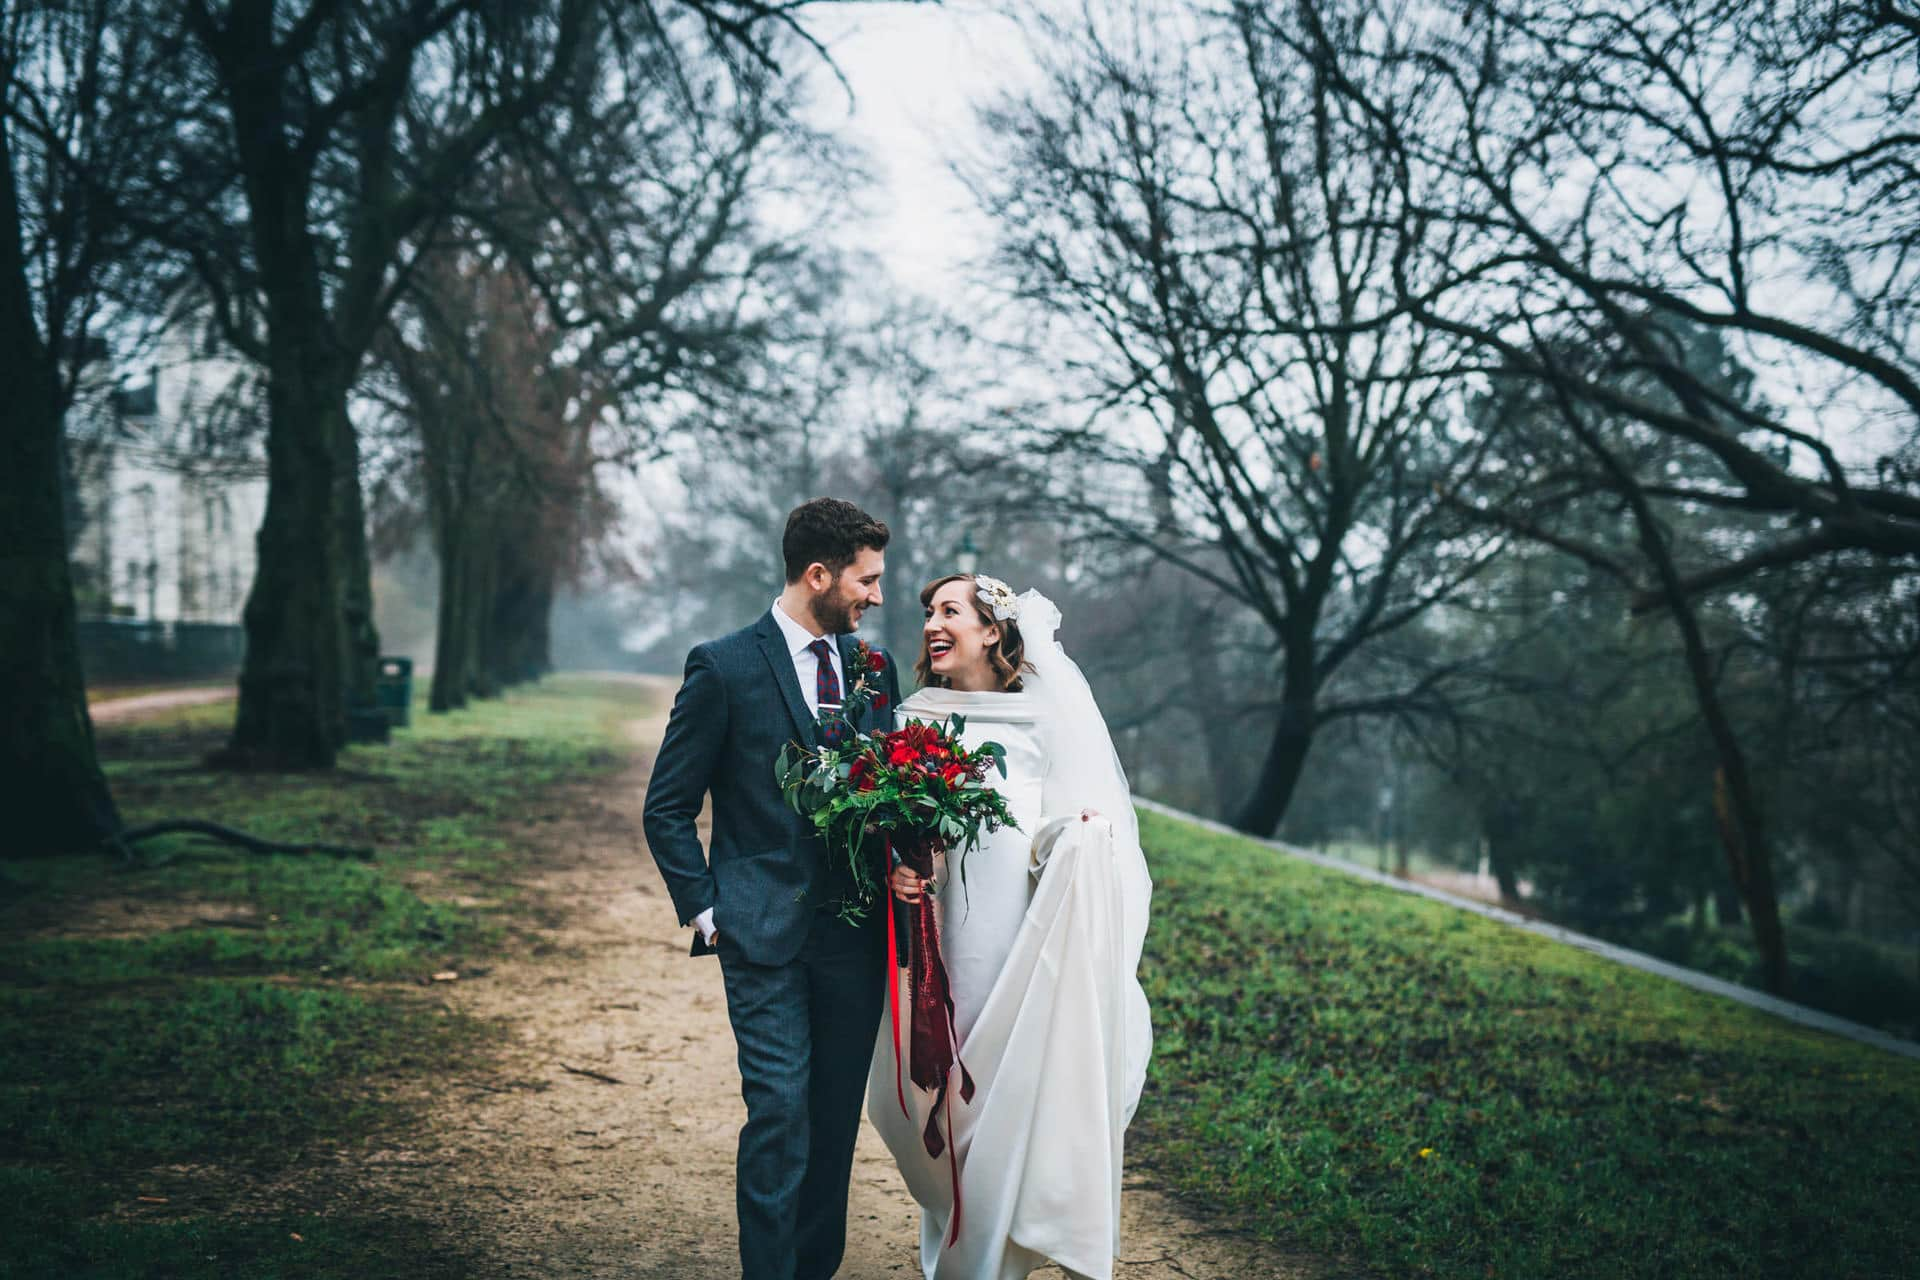 Preston wedding photographer - a bespoke wedding g